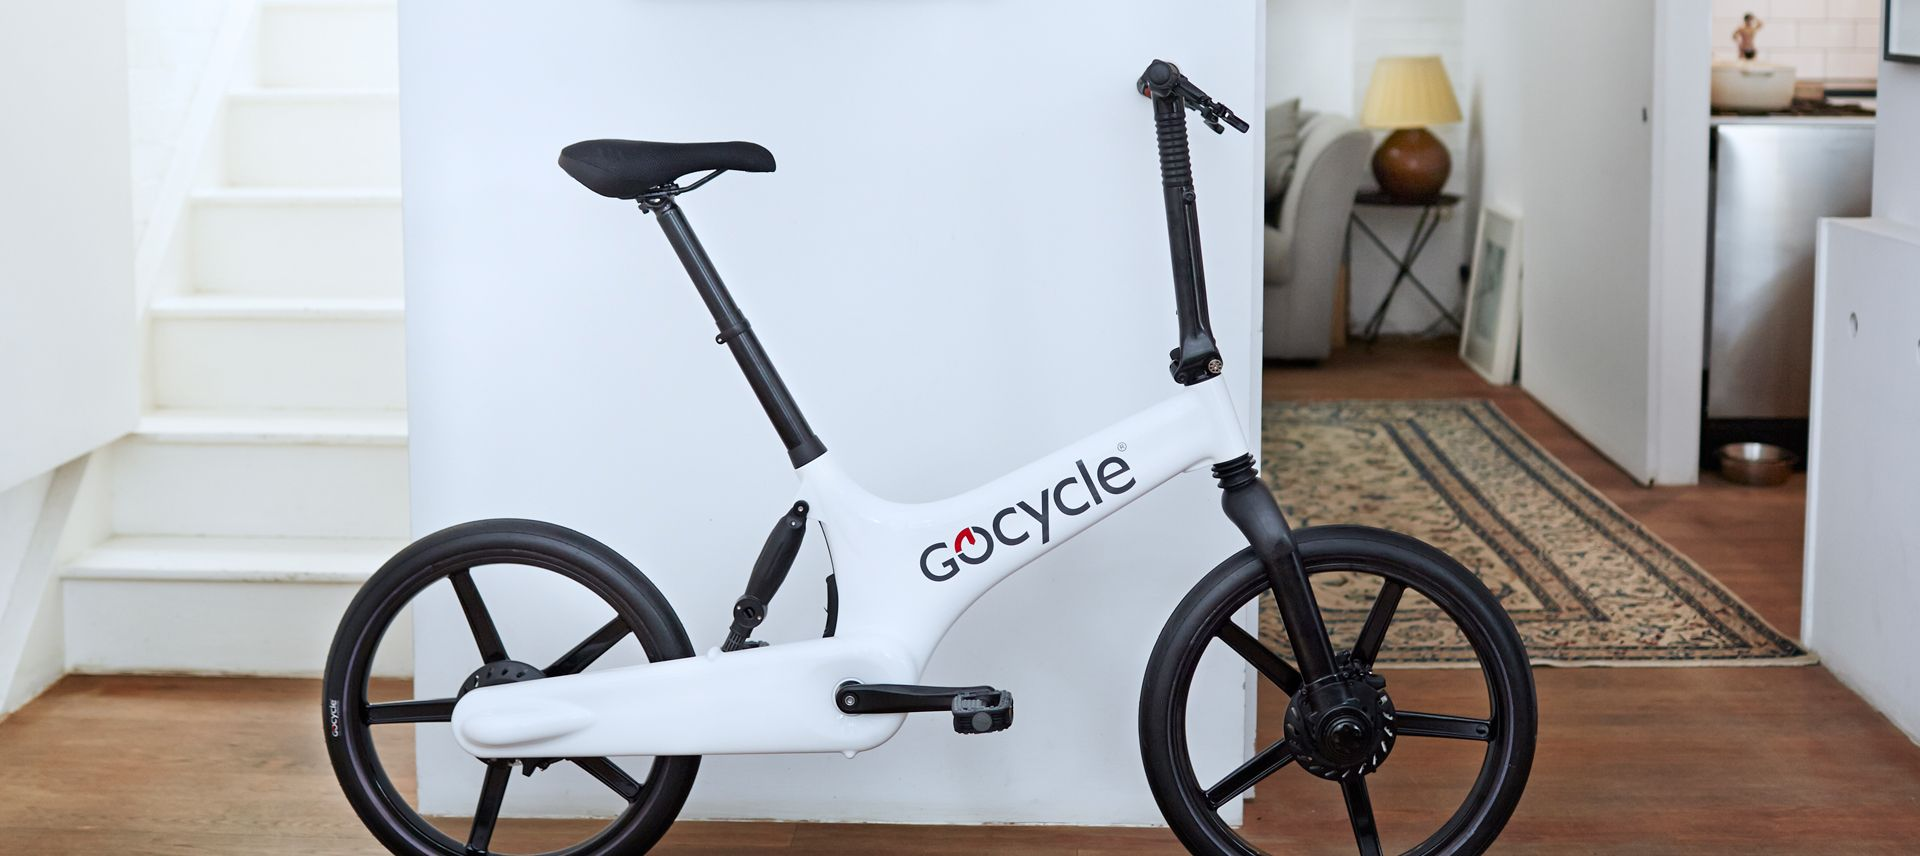 The clean design of the Gocycle is easy to live.